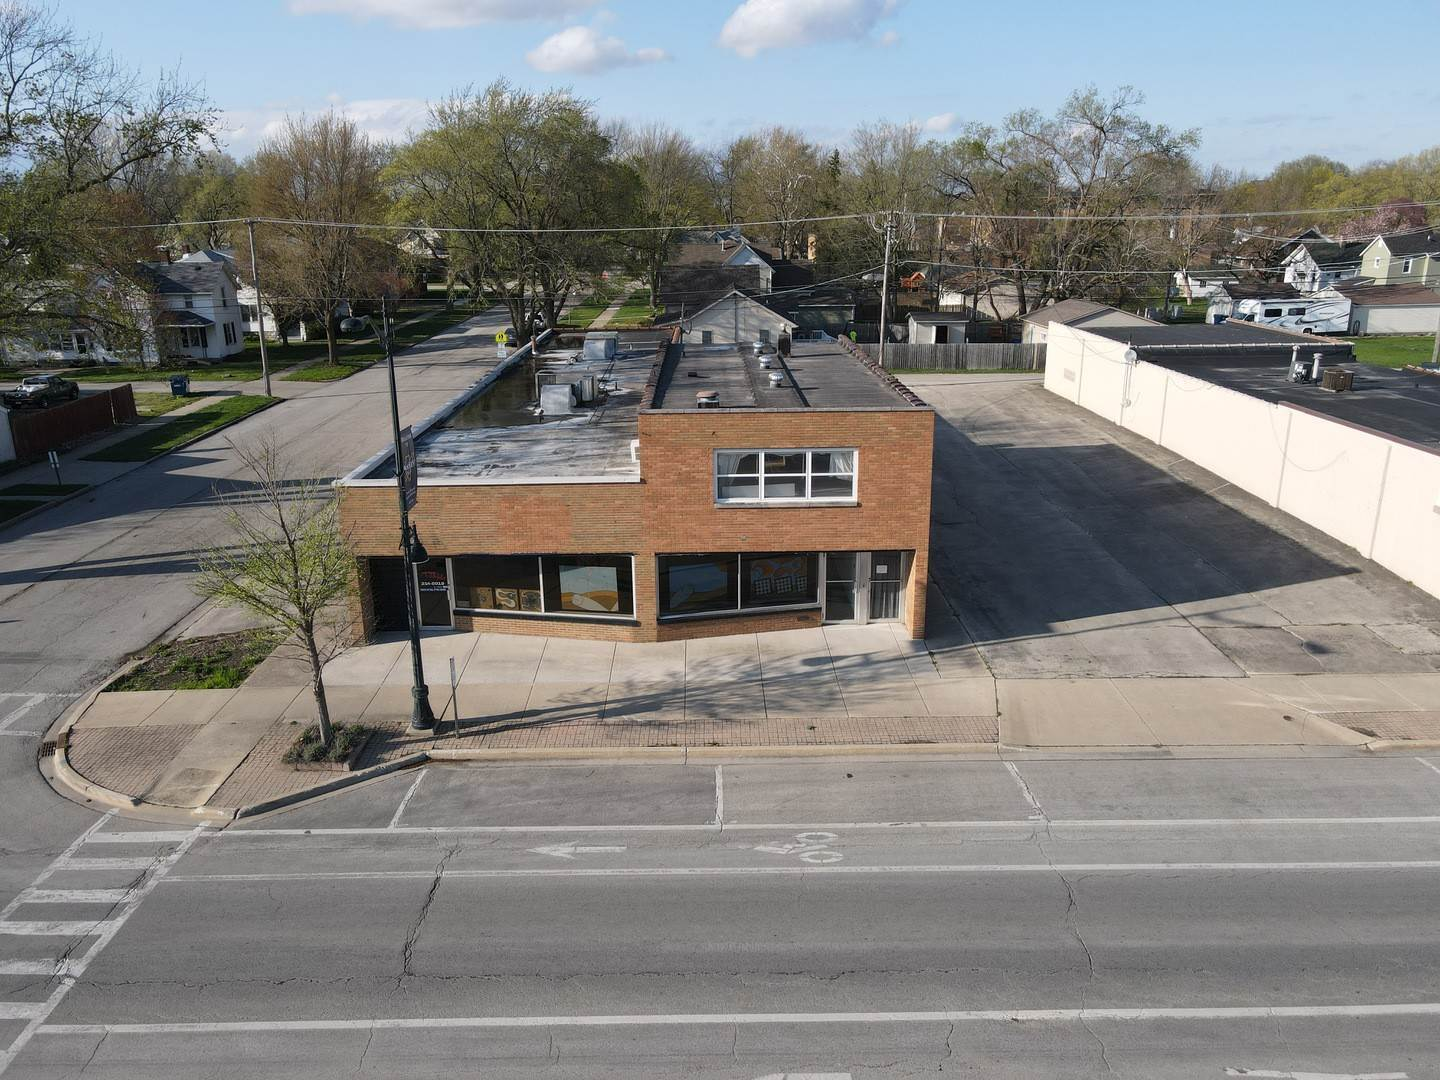 Commercial for Sale at 665 W Broadway Street Bradley, Illinois 60915 United States